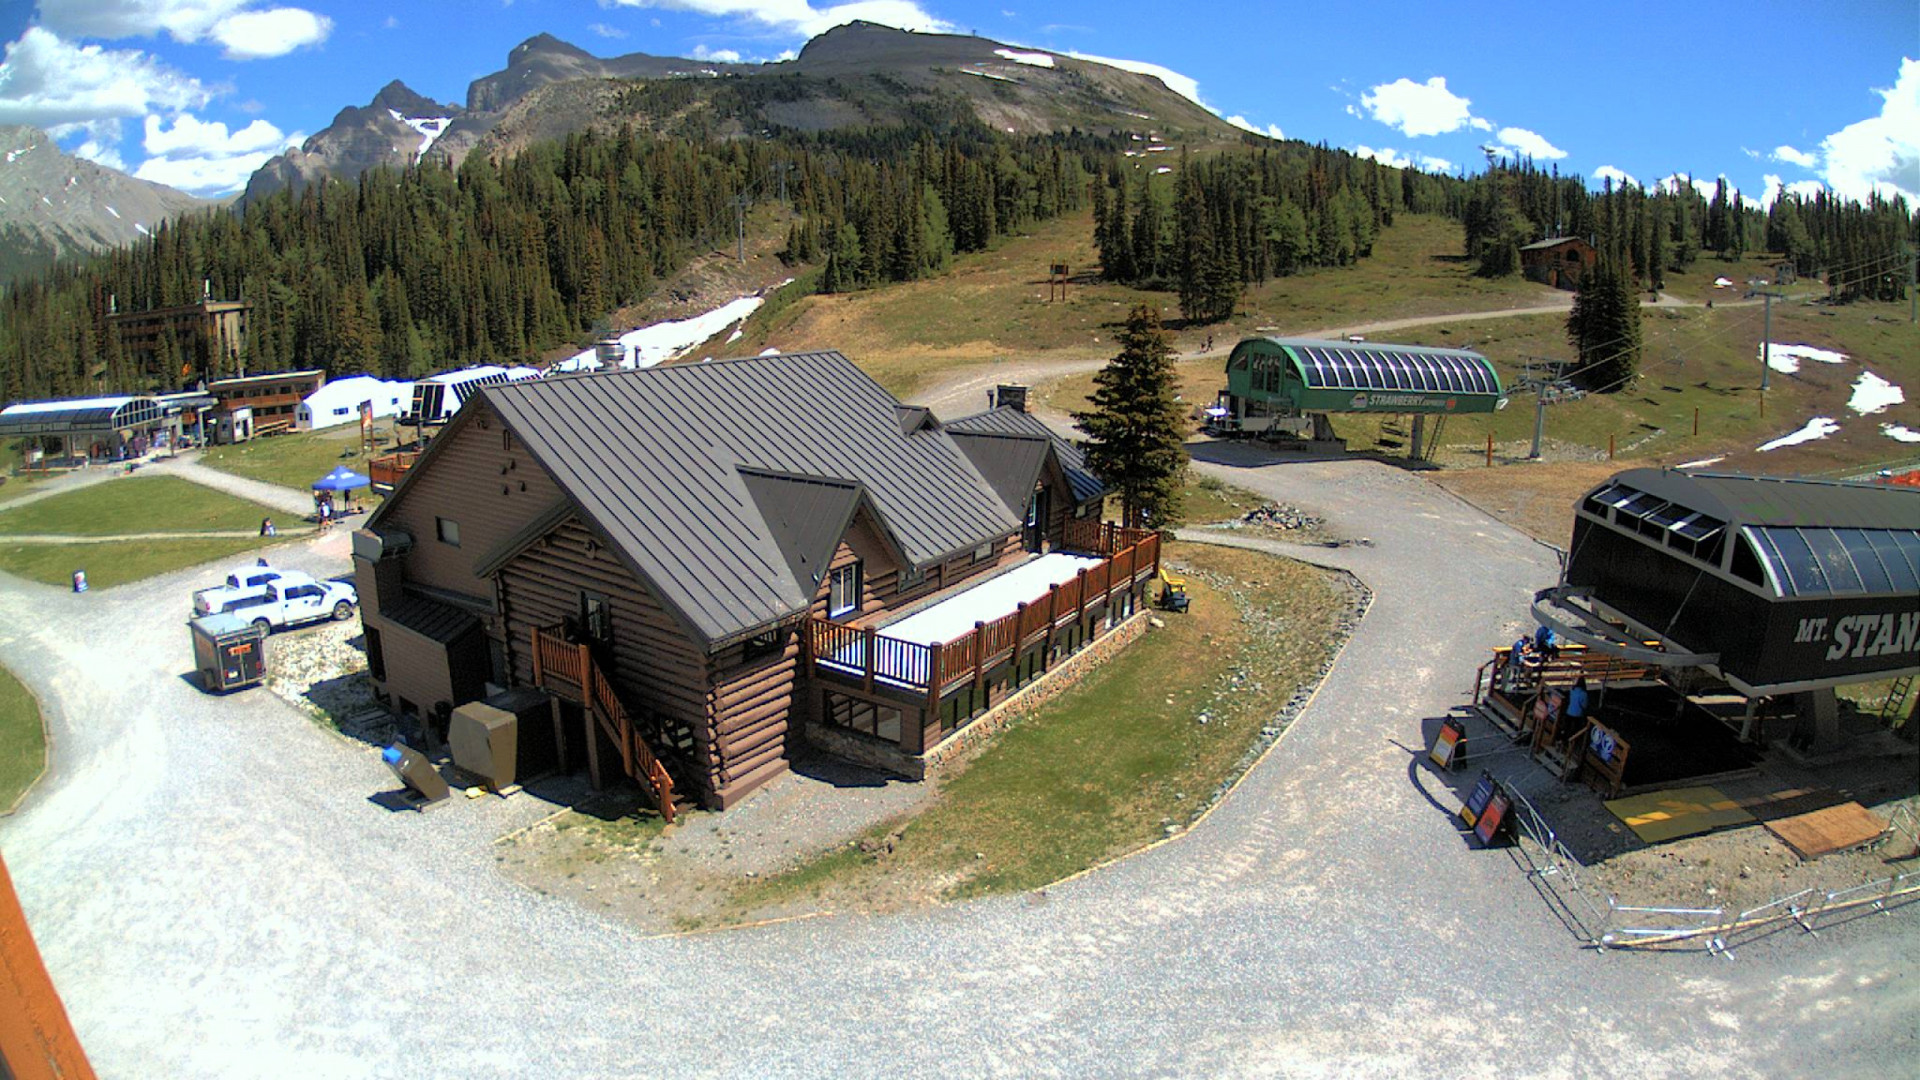 Sunshine Village web cam